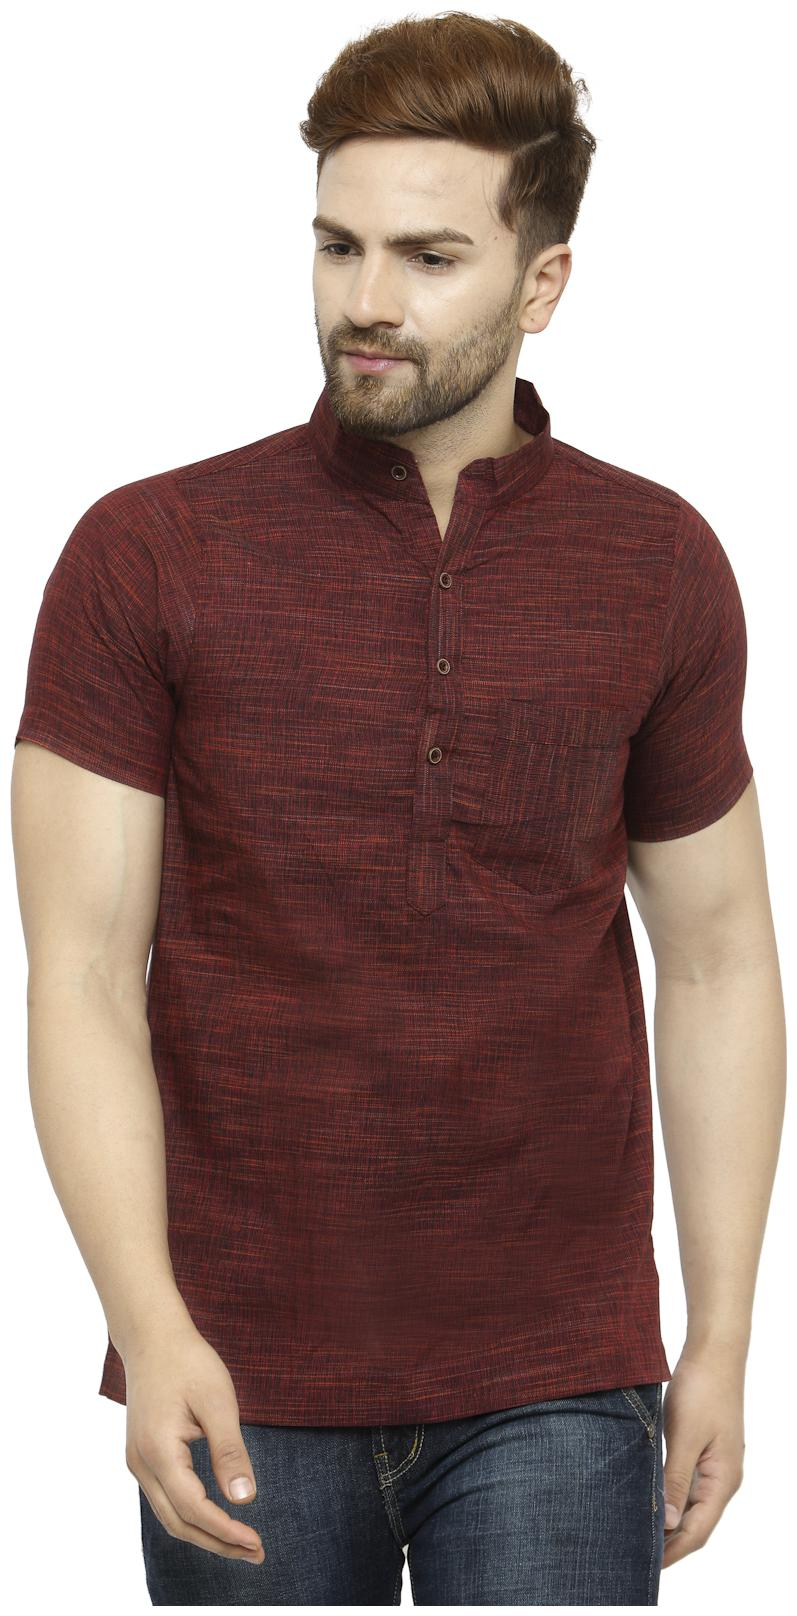 https://assetscdn1.paytm.com/images/catalog/product/A/AP/APPMAROON-COTTOED45714B051ED40/1562944424376_0..jpg